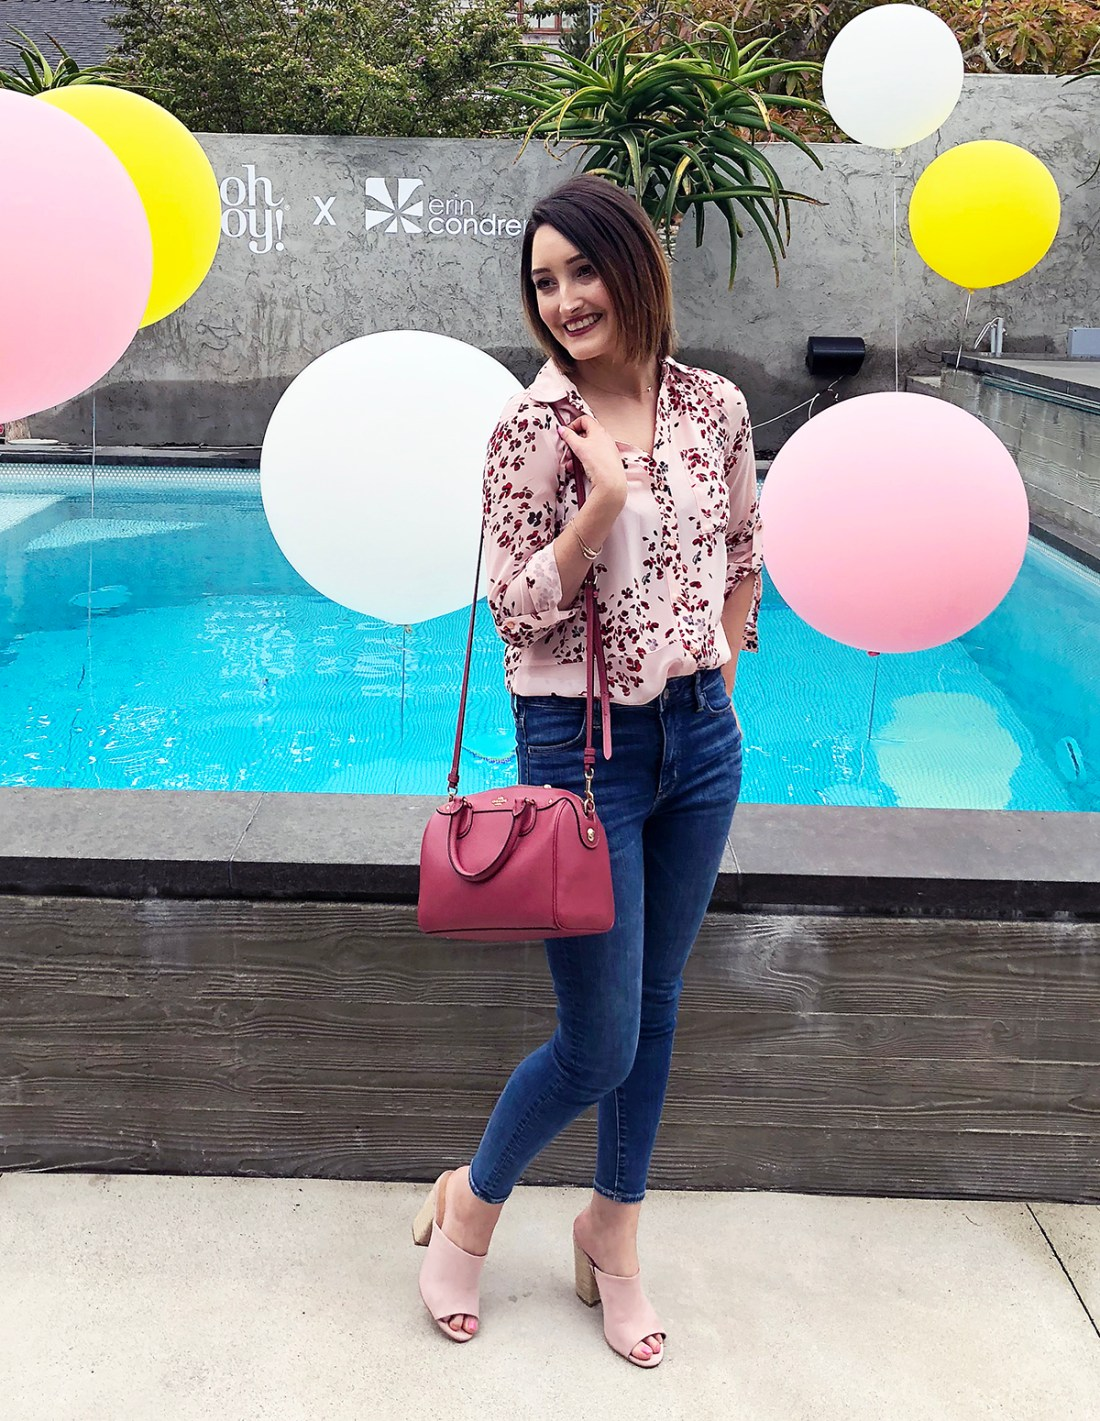 Spring Outfit: Floral Blush Top, Jeans + Blush Mules